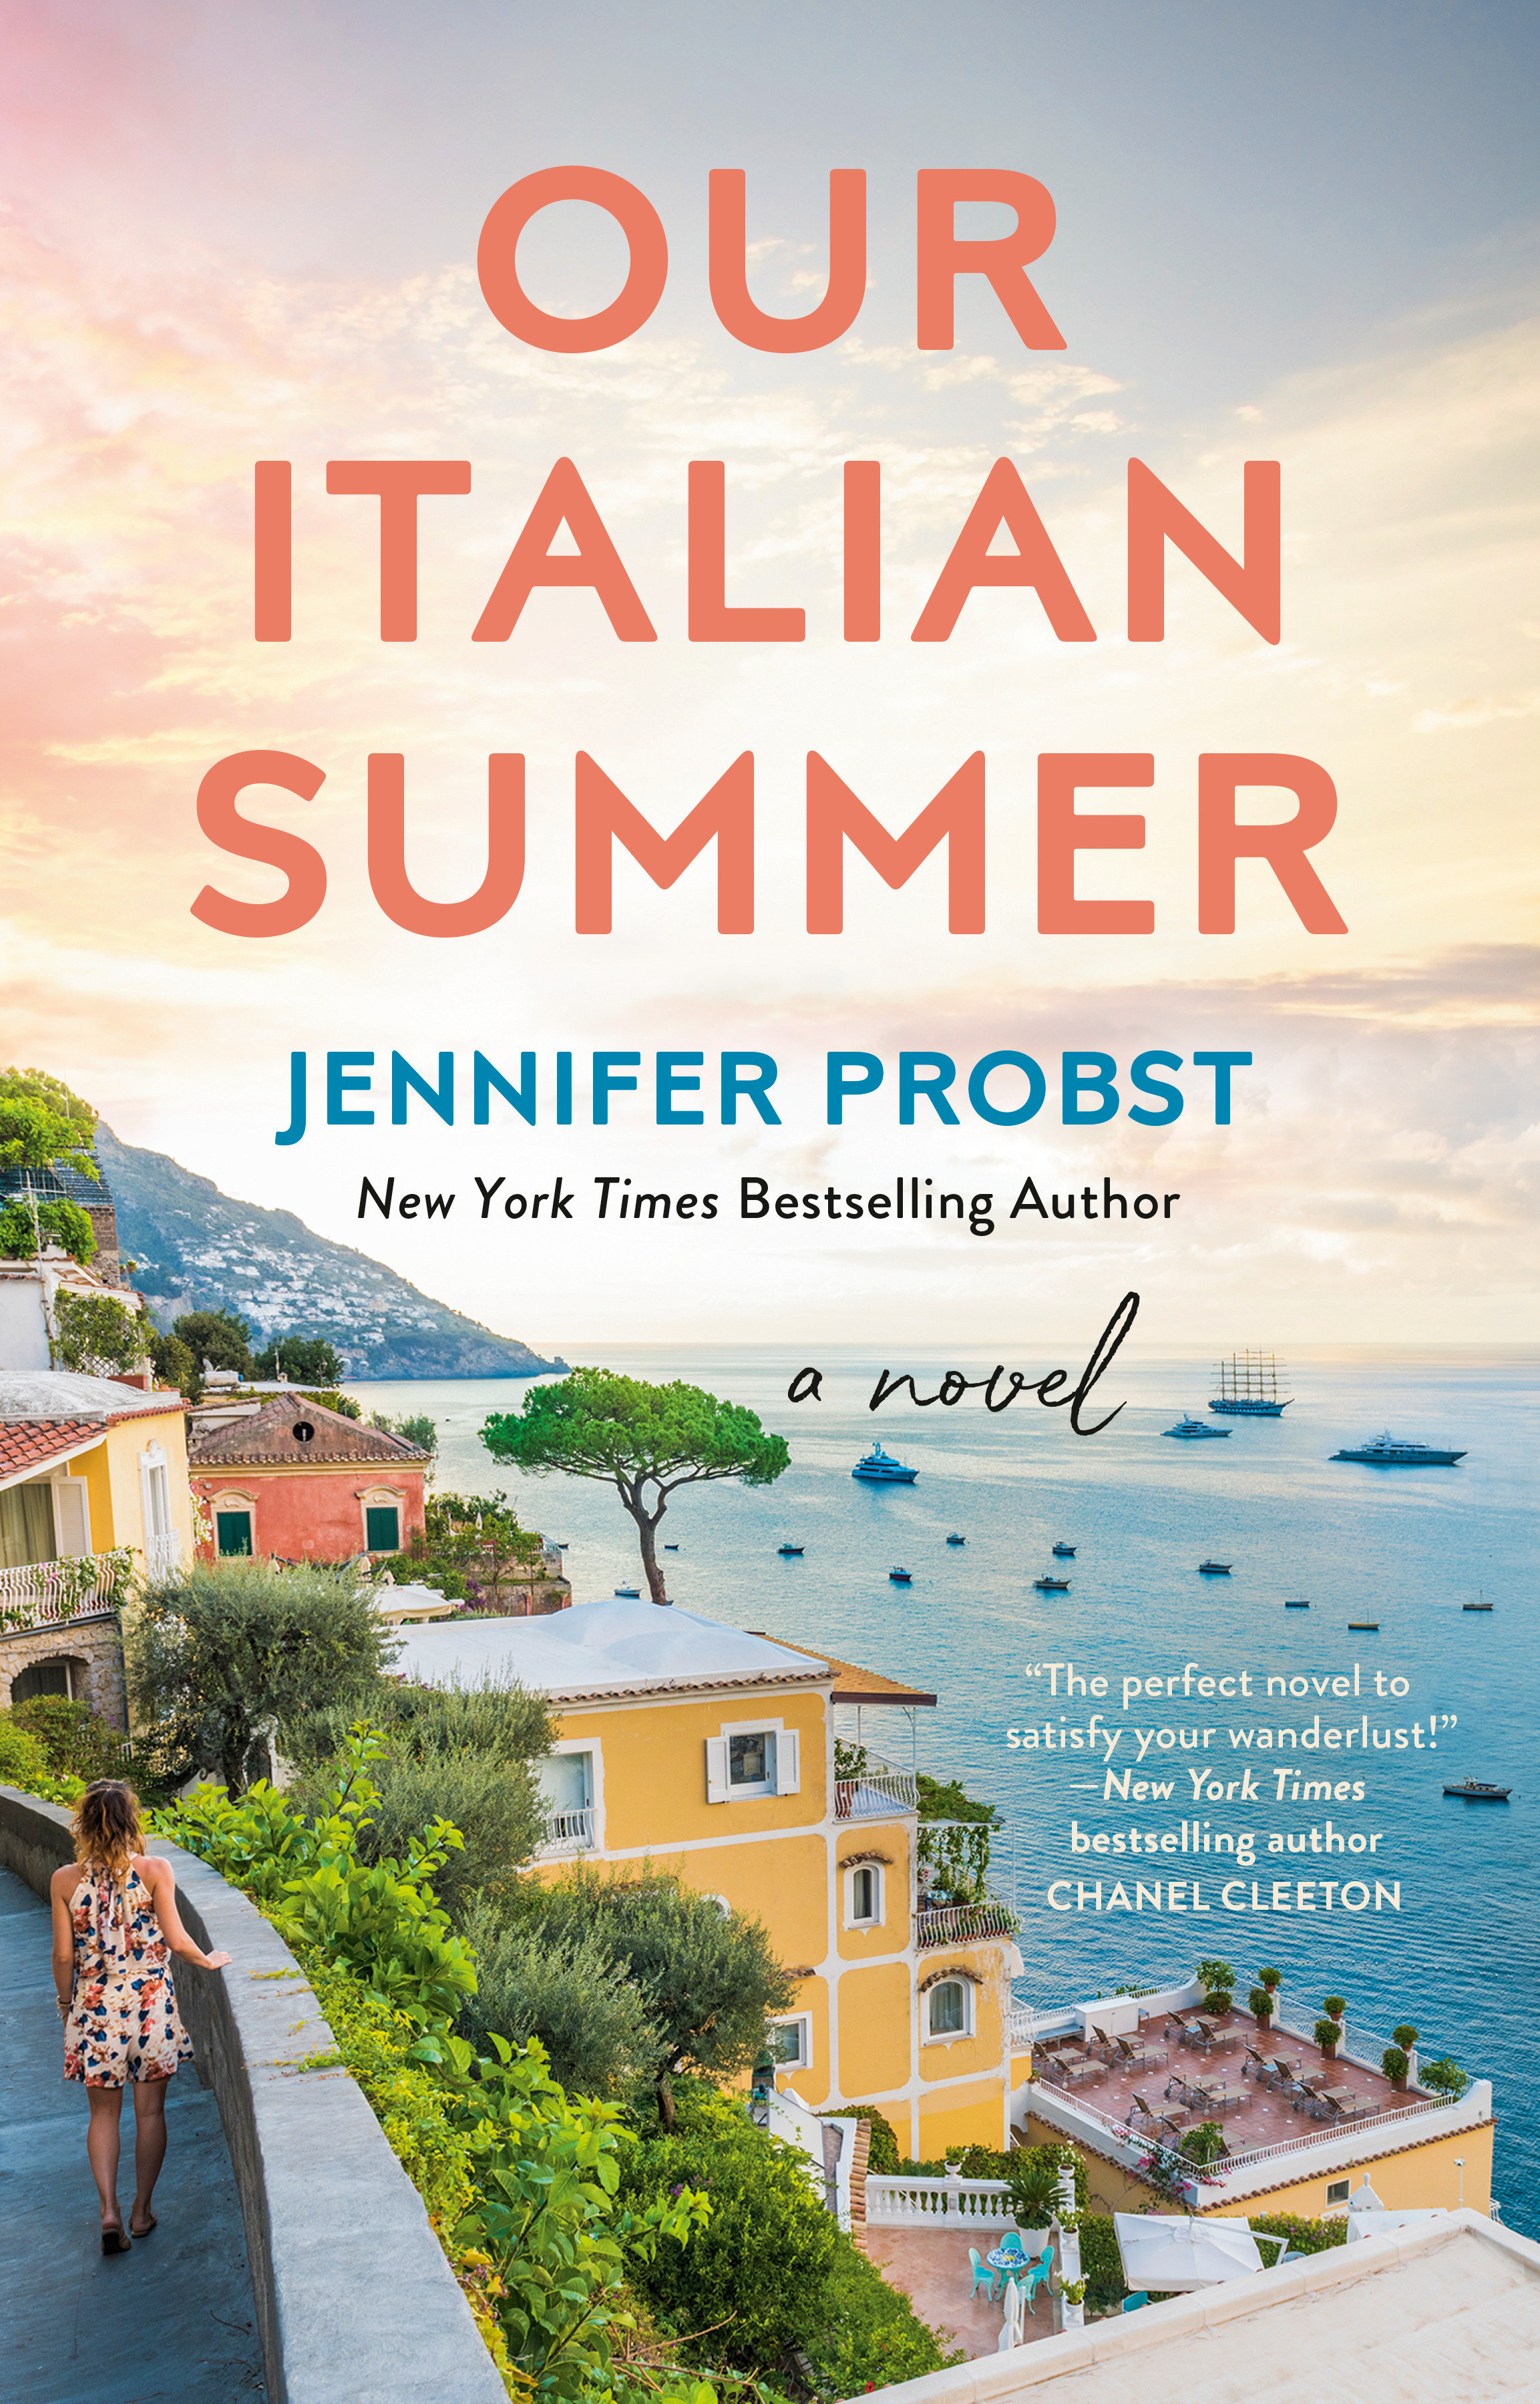 Our Italian summer cover image